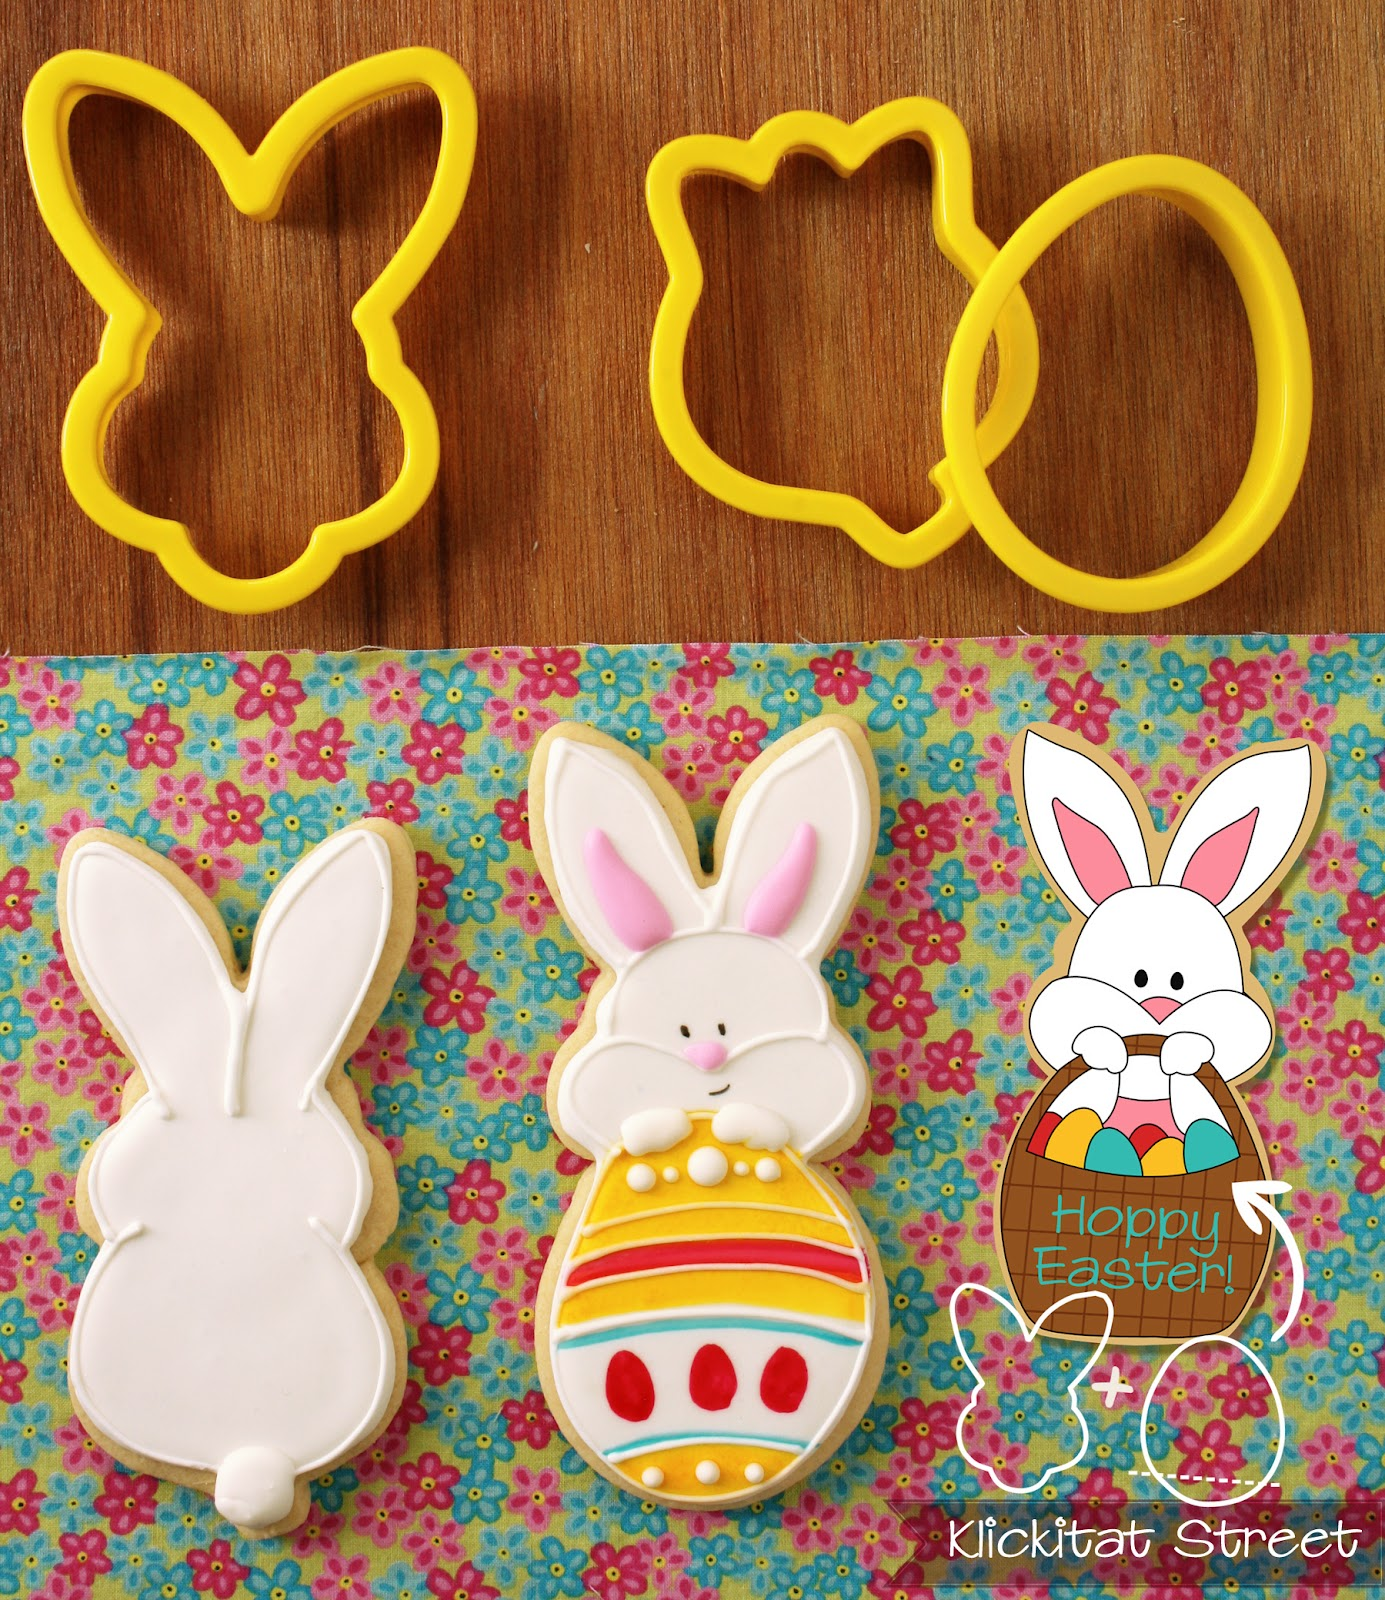 Easter bunny rabbit cookies made by combining bunnny face cookie cutter with an egg and a tulip